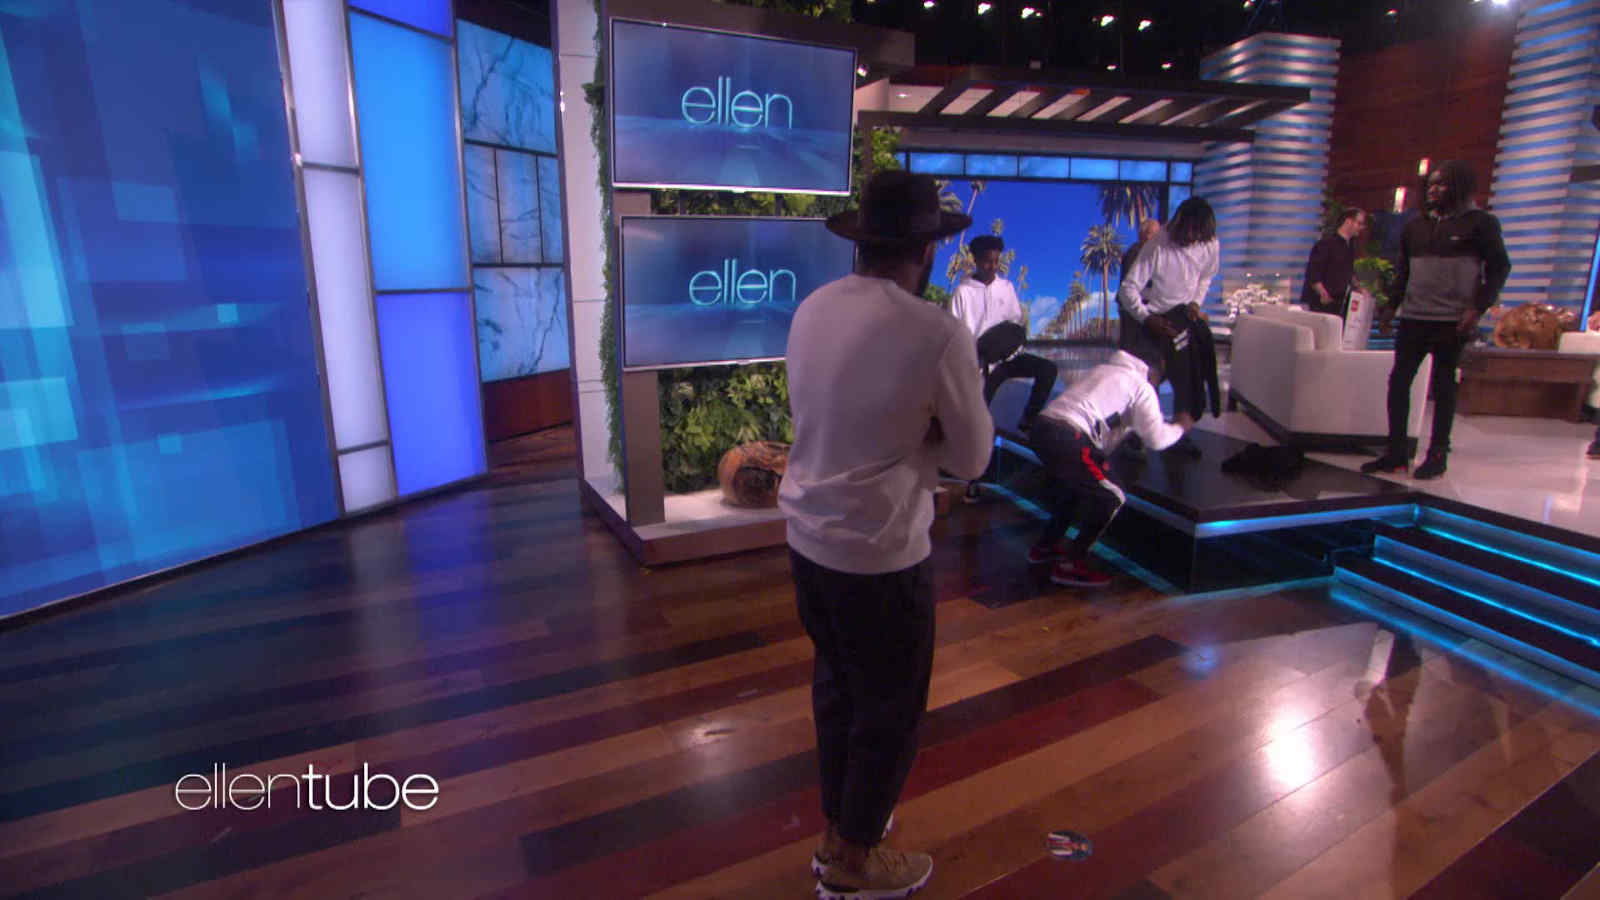 Ellen DeGeneres fan speaks out about 'humiliating' appearance on show